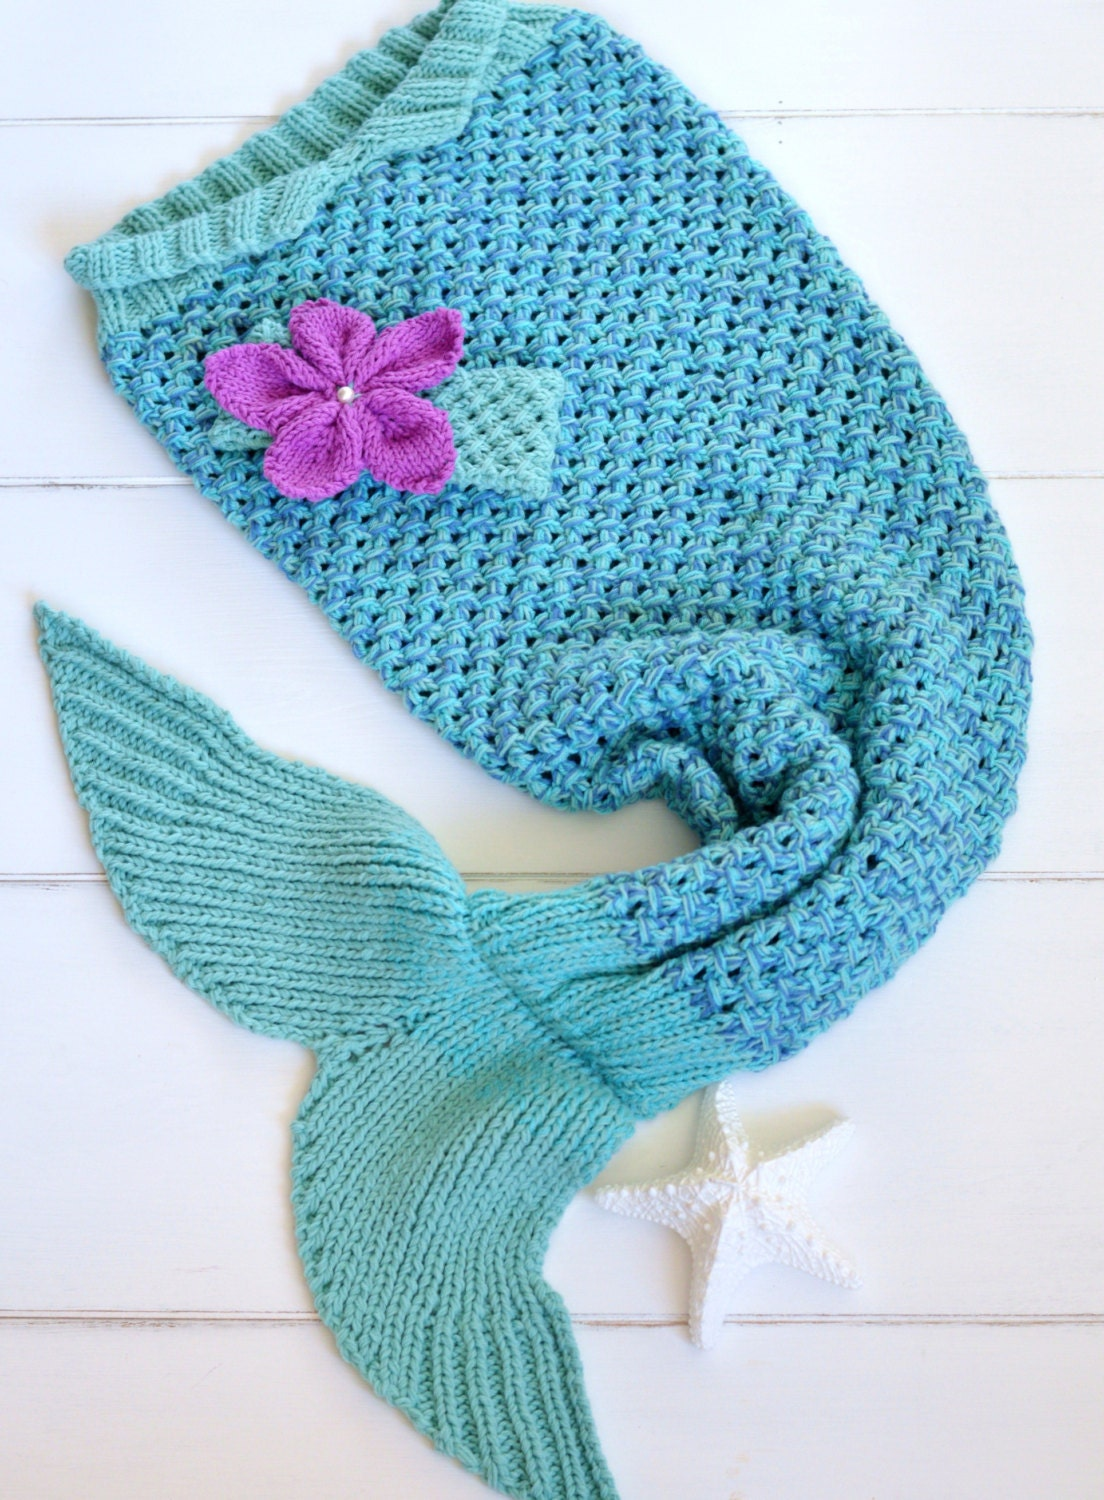 KNITTING PATTERN for Mermaid Tail Blanket for Children 6 sizes